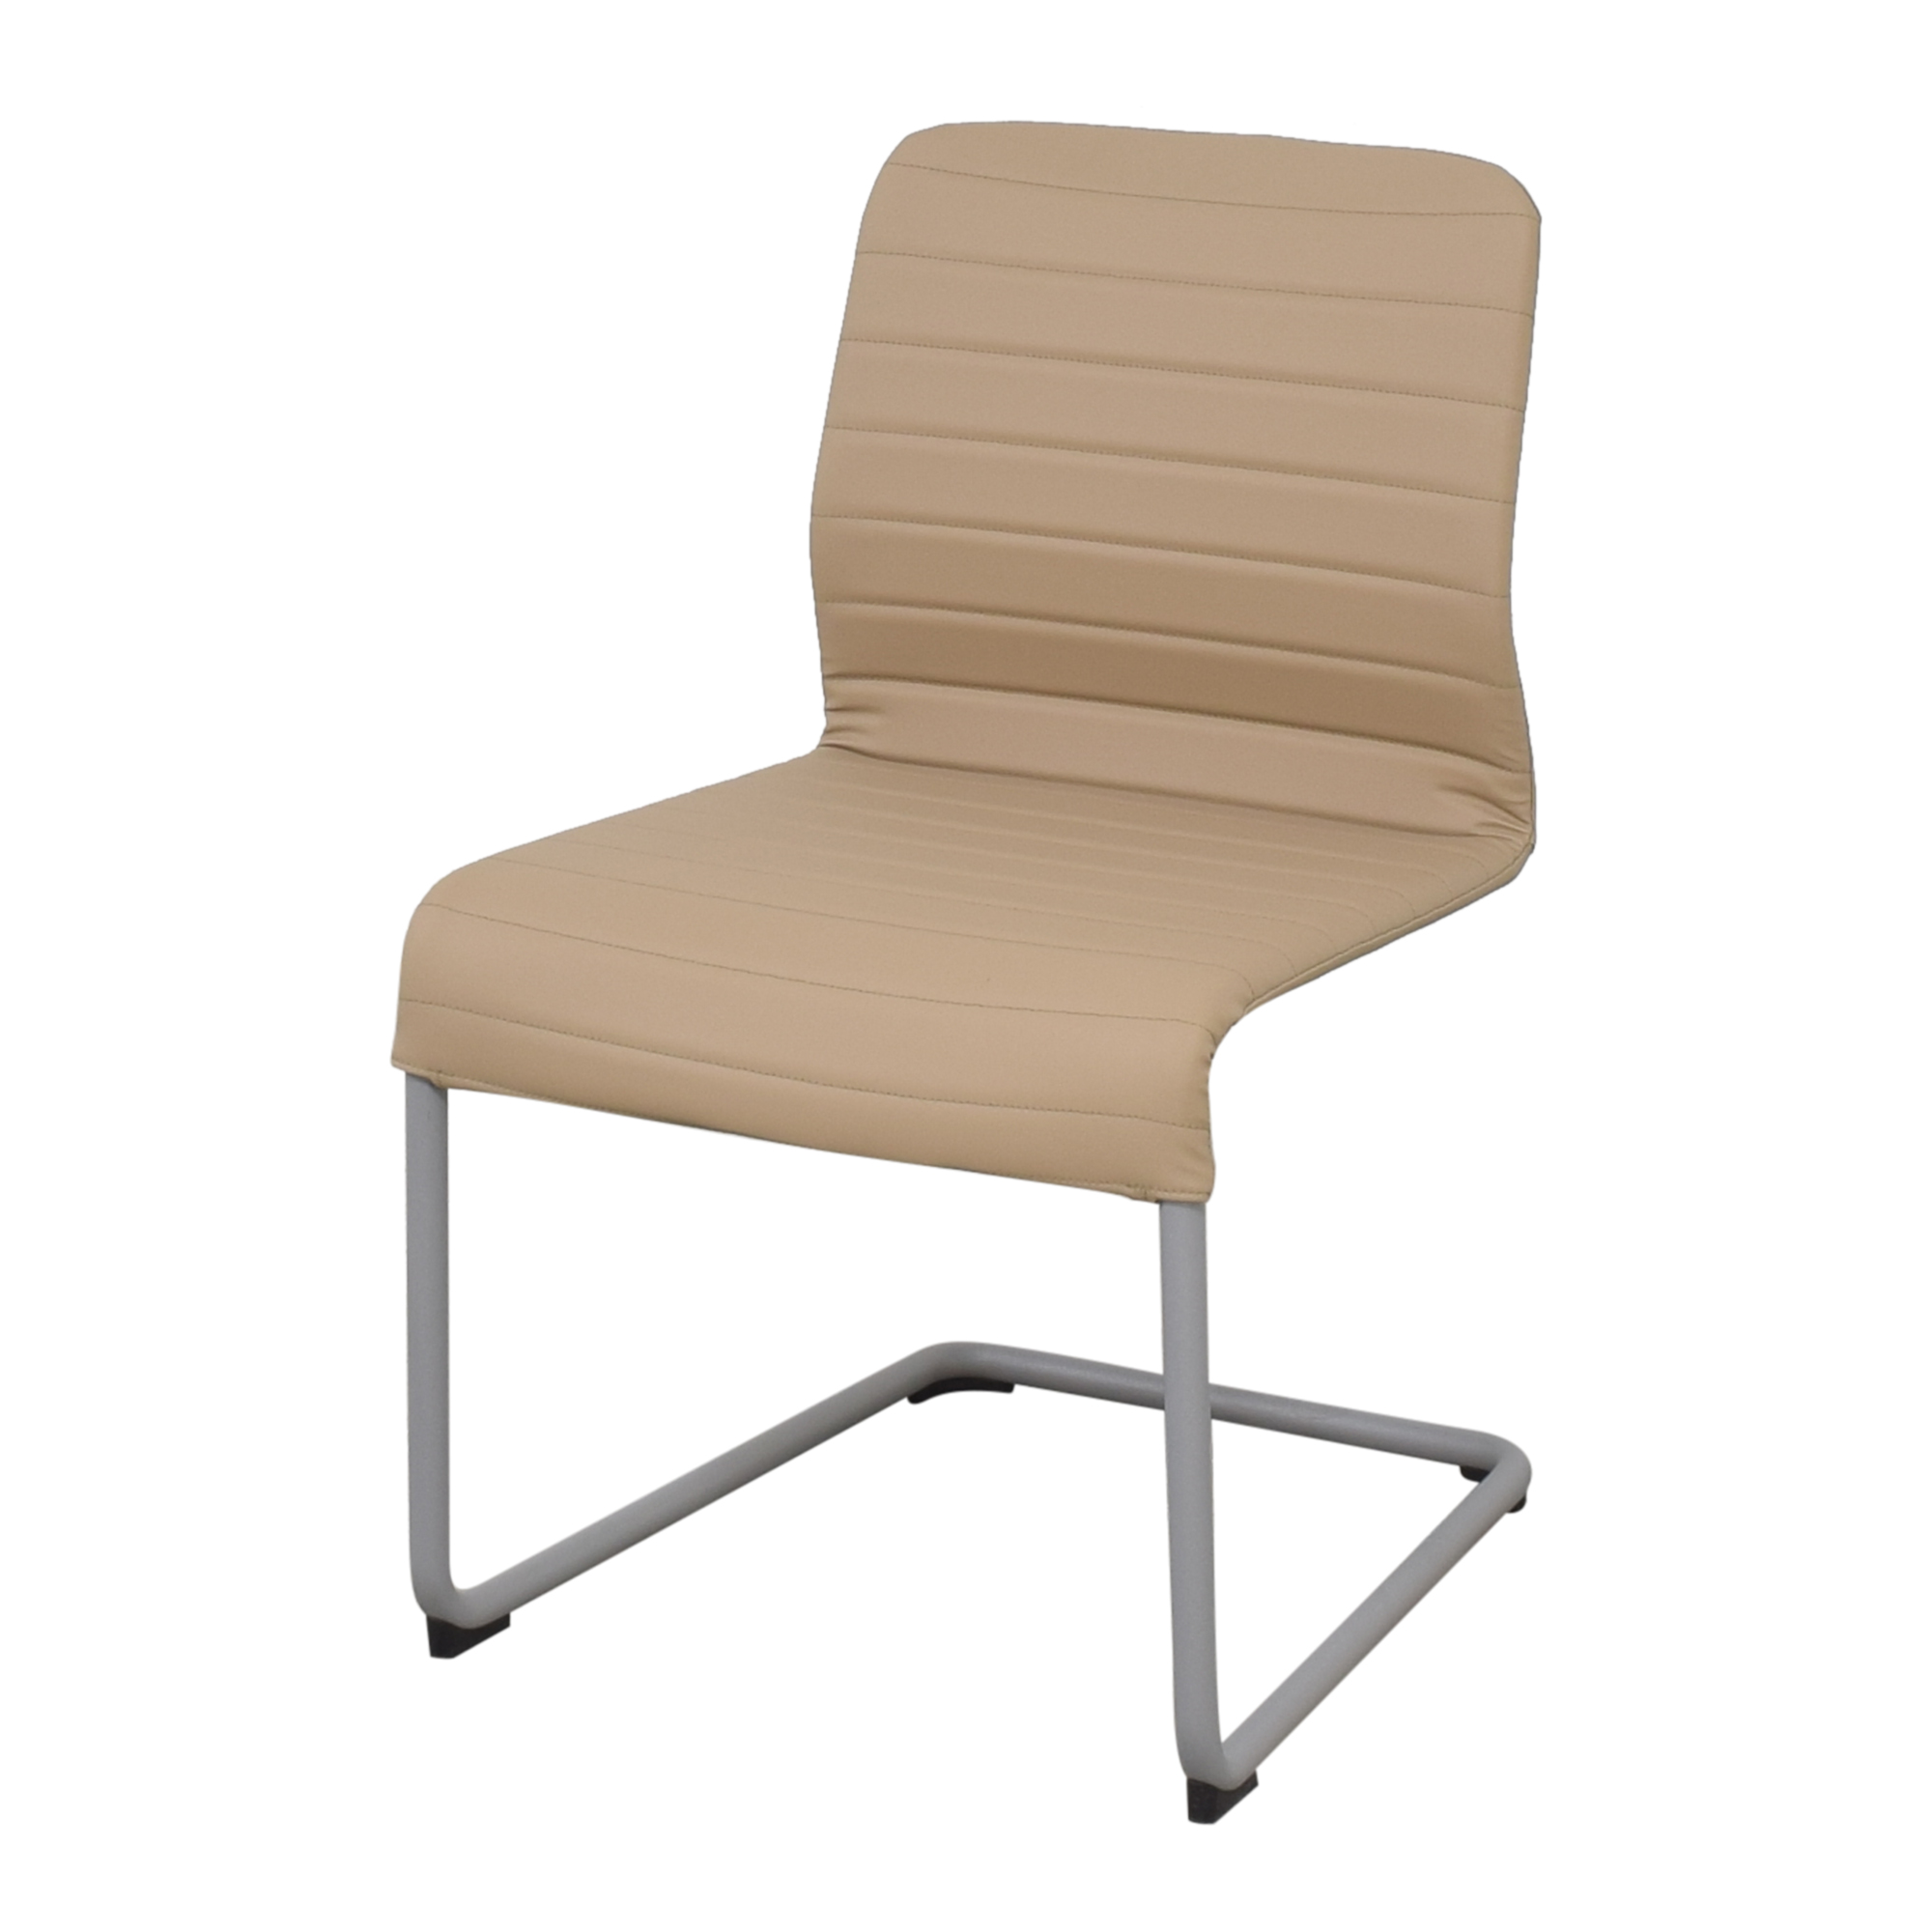 Global Furniture Group Global Furniture Group Lite Cantilever Frame Side Chairs for sale